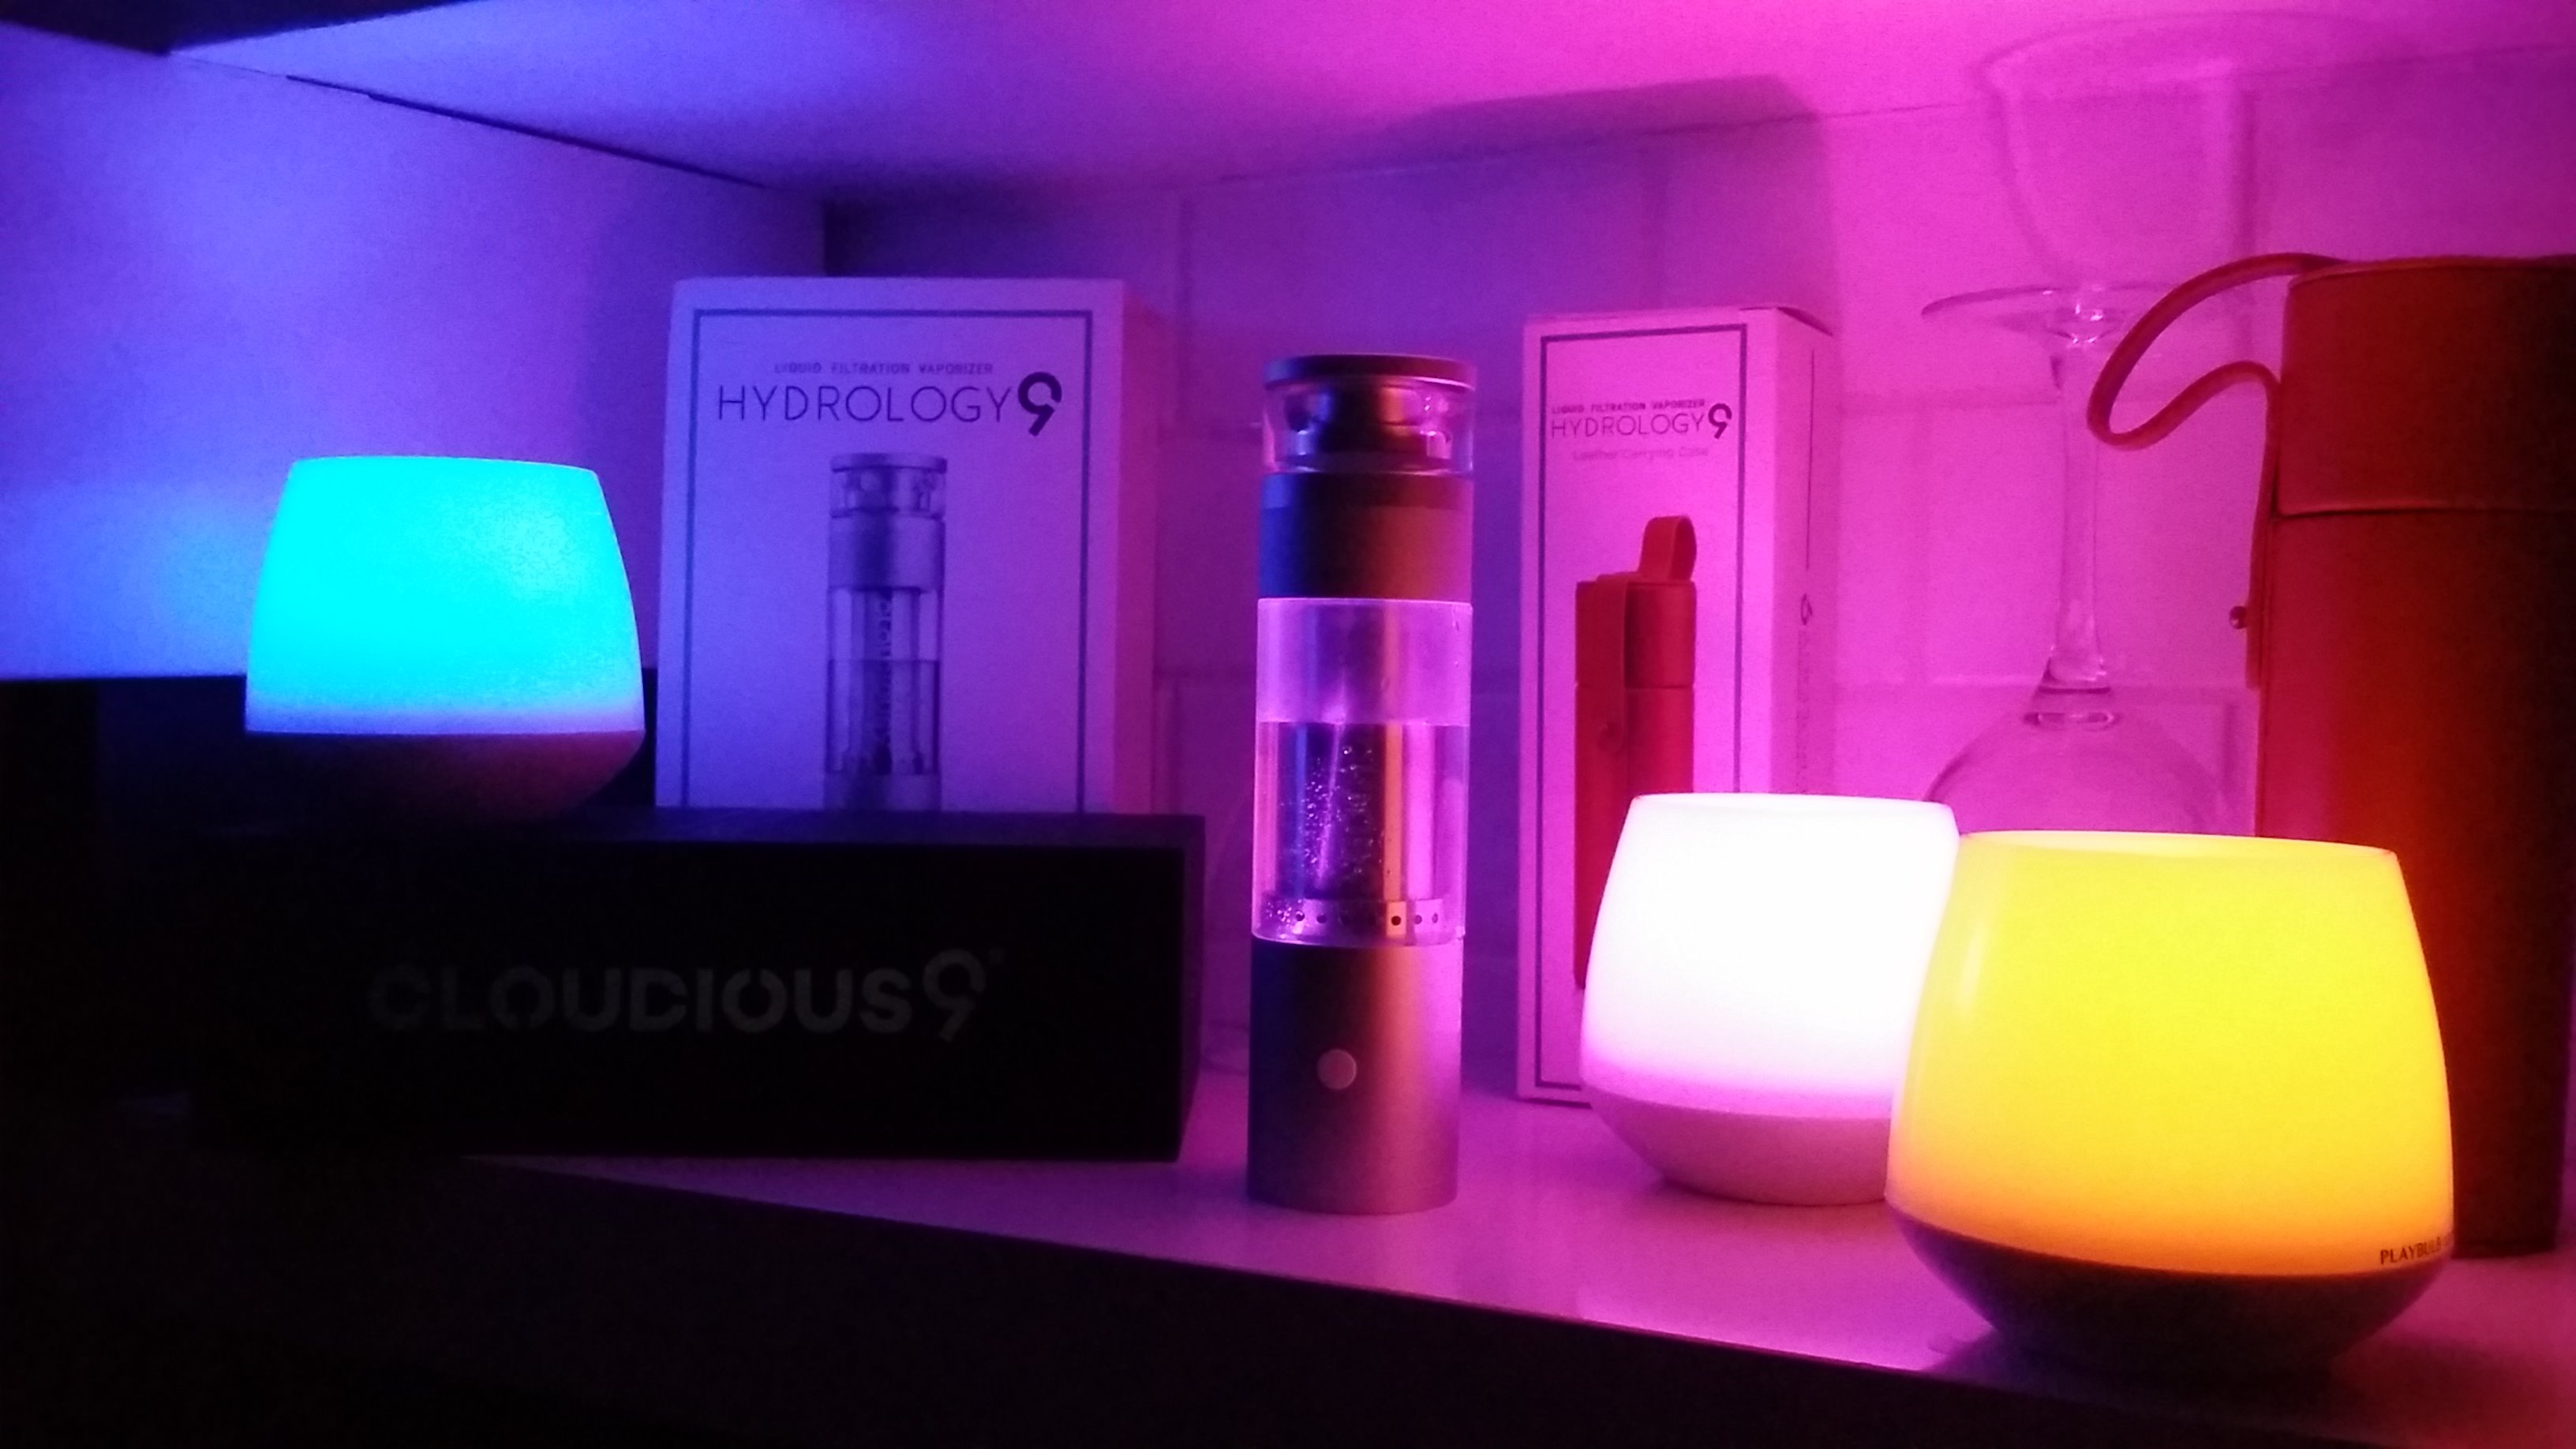 Hydrology9 Vaporizer Lights